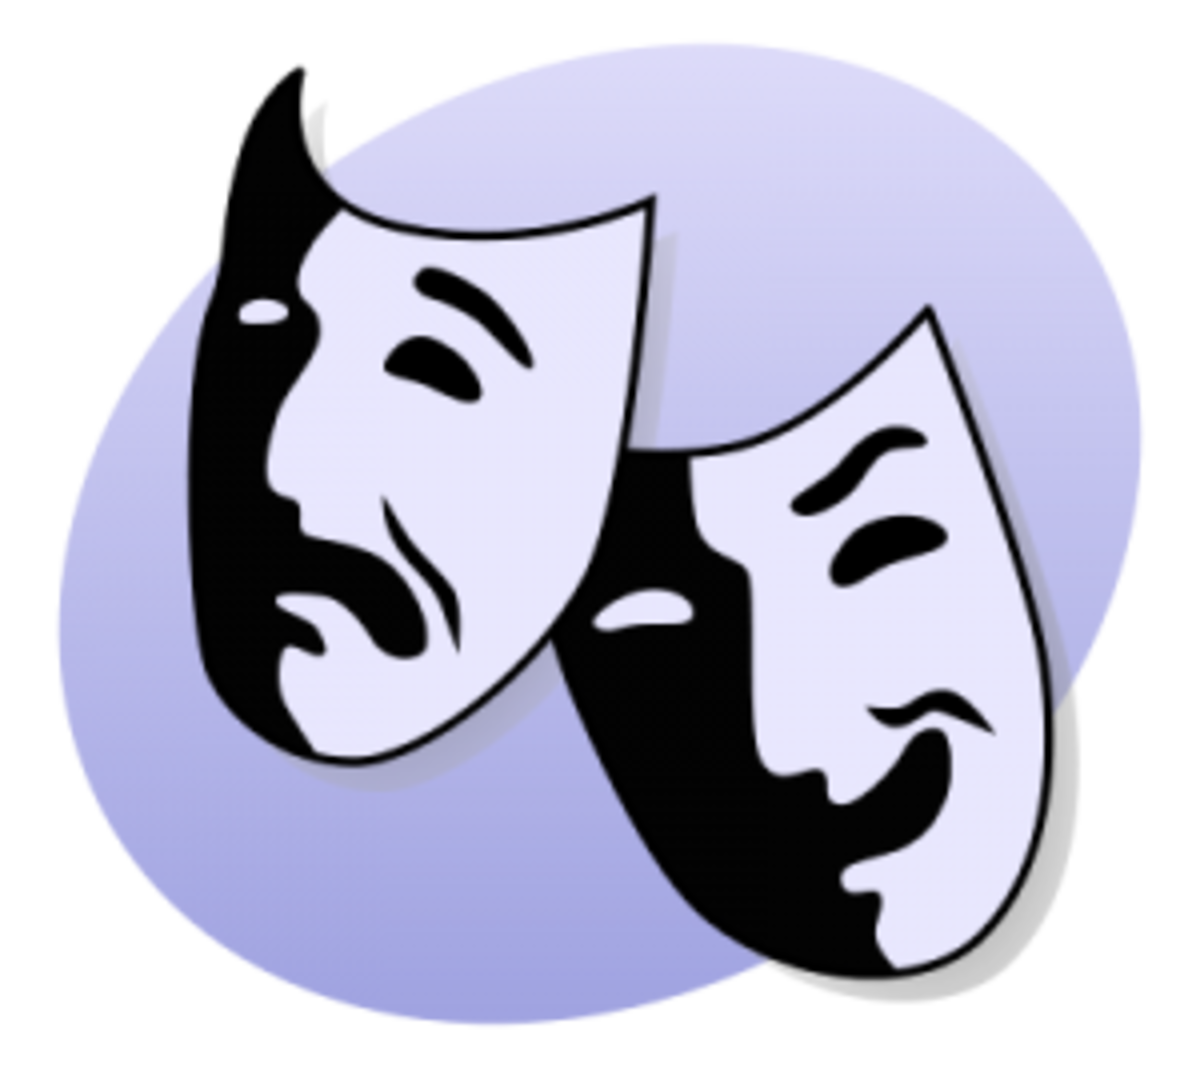 The eternal symbol of theater is the comedy and tragedy masks as the earliest categorizing of genre for original stories.